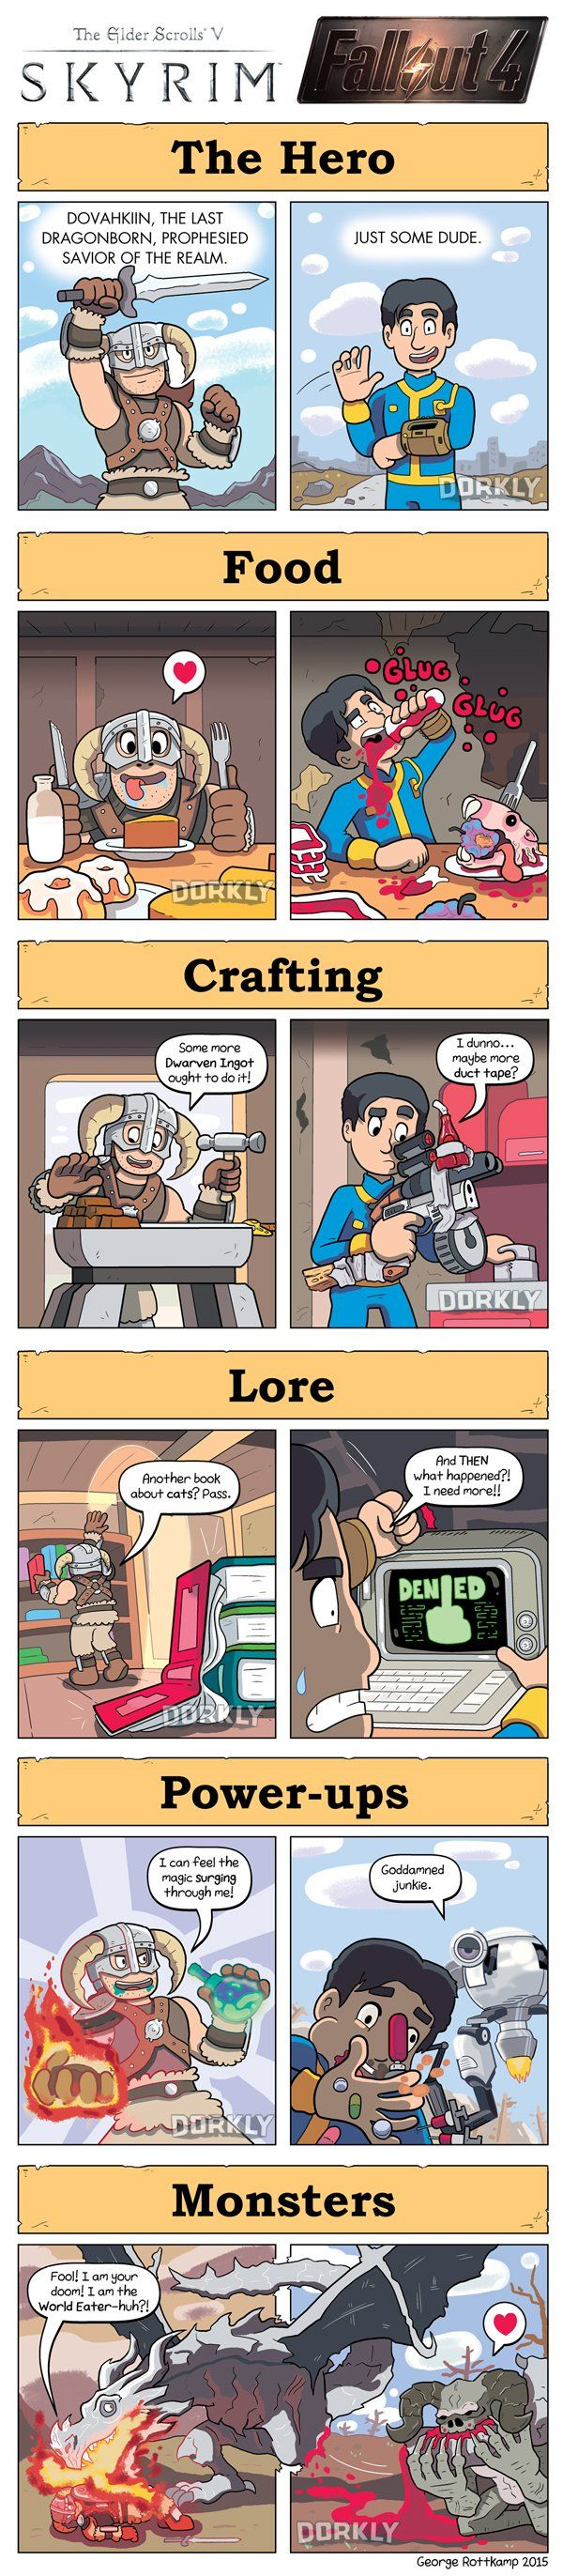 A fantastic comic by George Rottkamp and Tristan Cooper from Dorkly comparing the worlds of Skyrim and Fallout.    [Source: Dorkly]